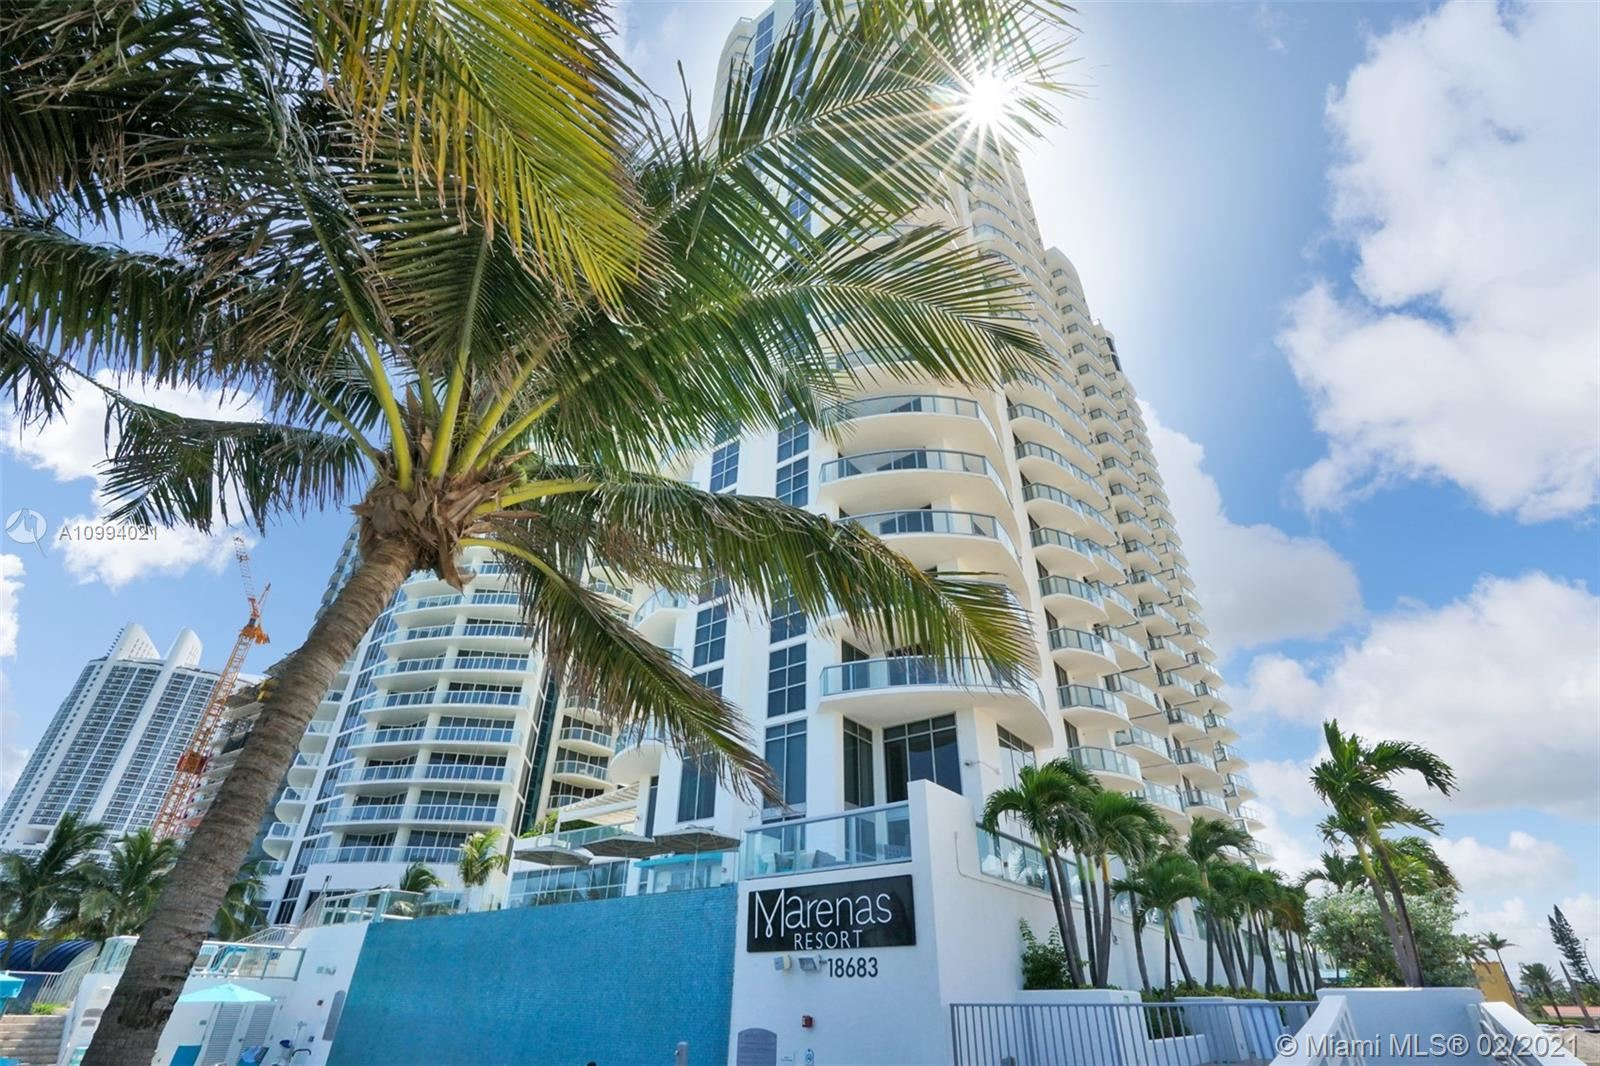 18683 Collins Ave #1409, Sunny Isles, FL 33160 - #: A10994021